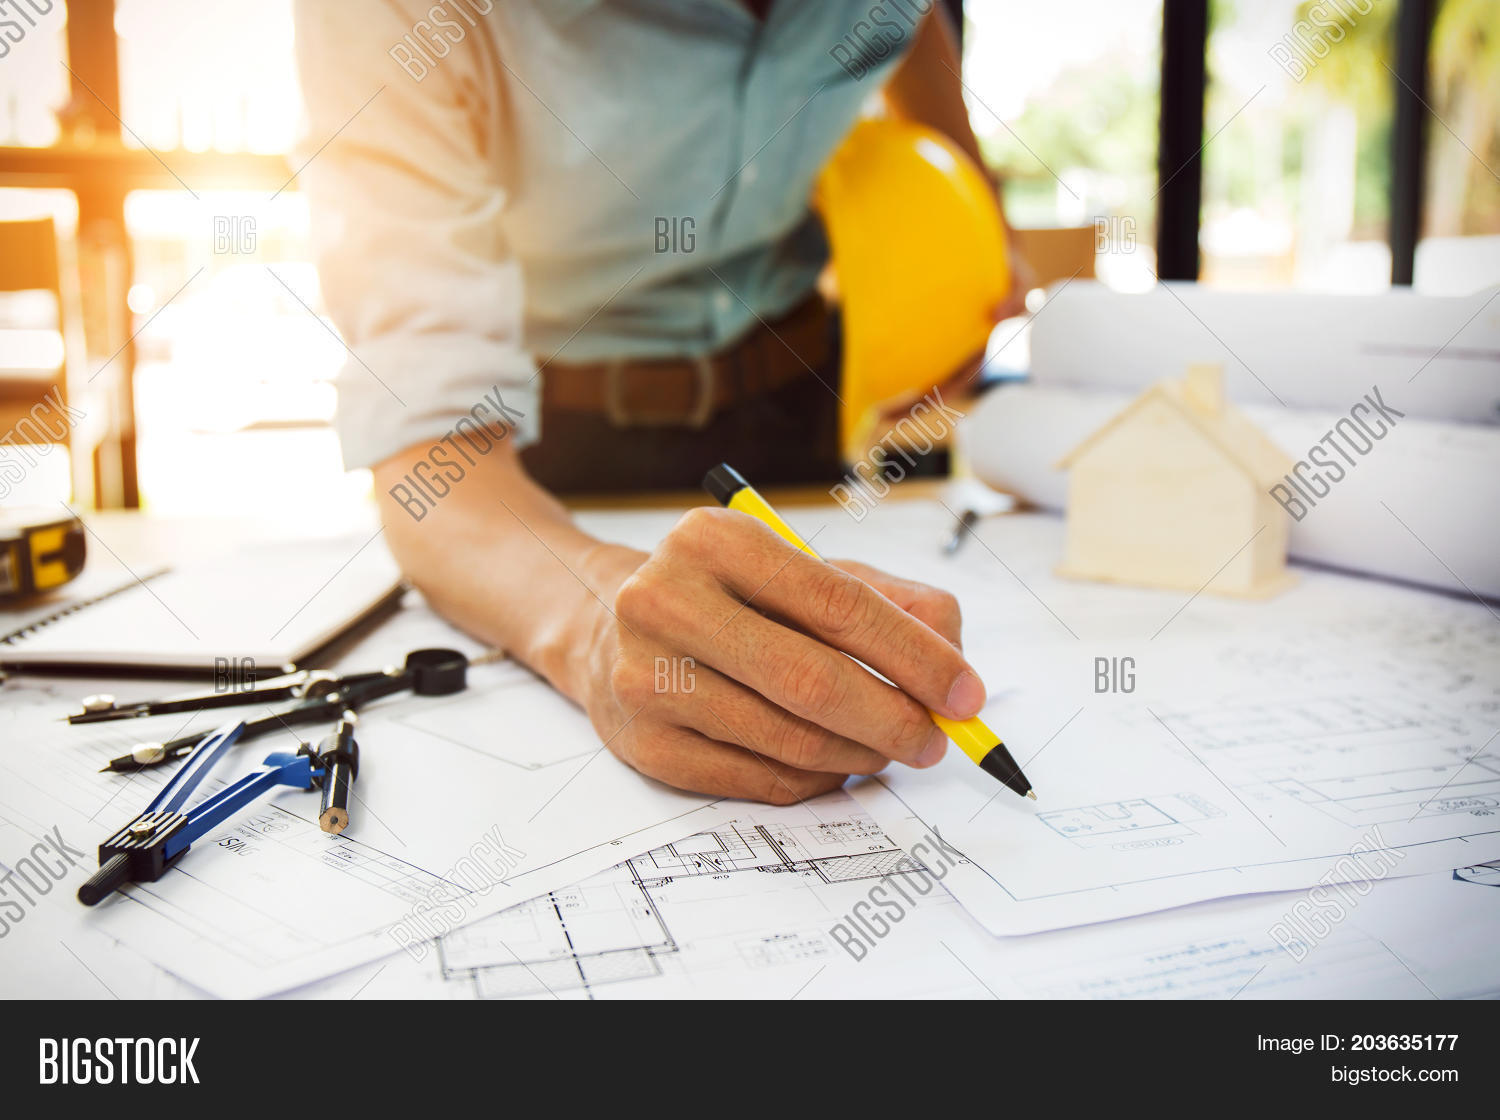 Team construction image photo free trial bigstock team of construction engineer working hard project blueprint to build large commercial buildings and golf course malvernweather Choice Image